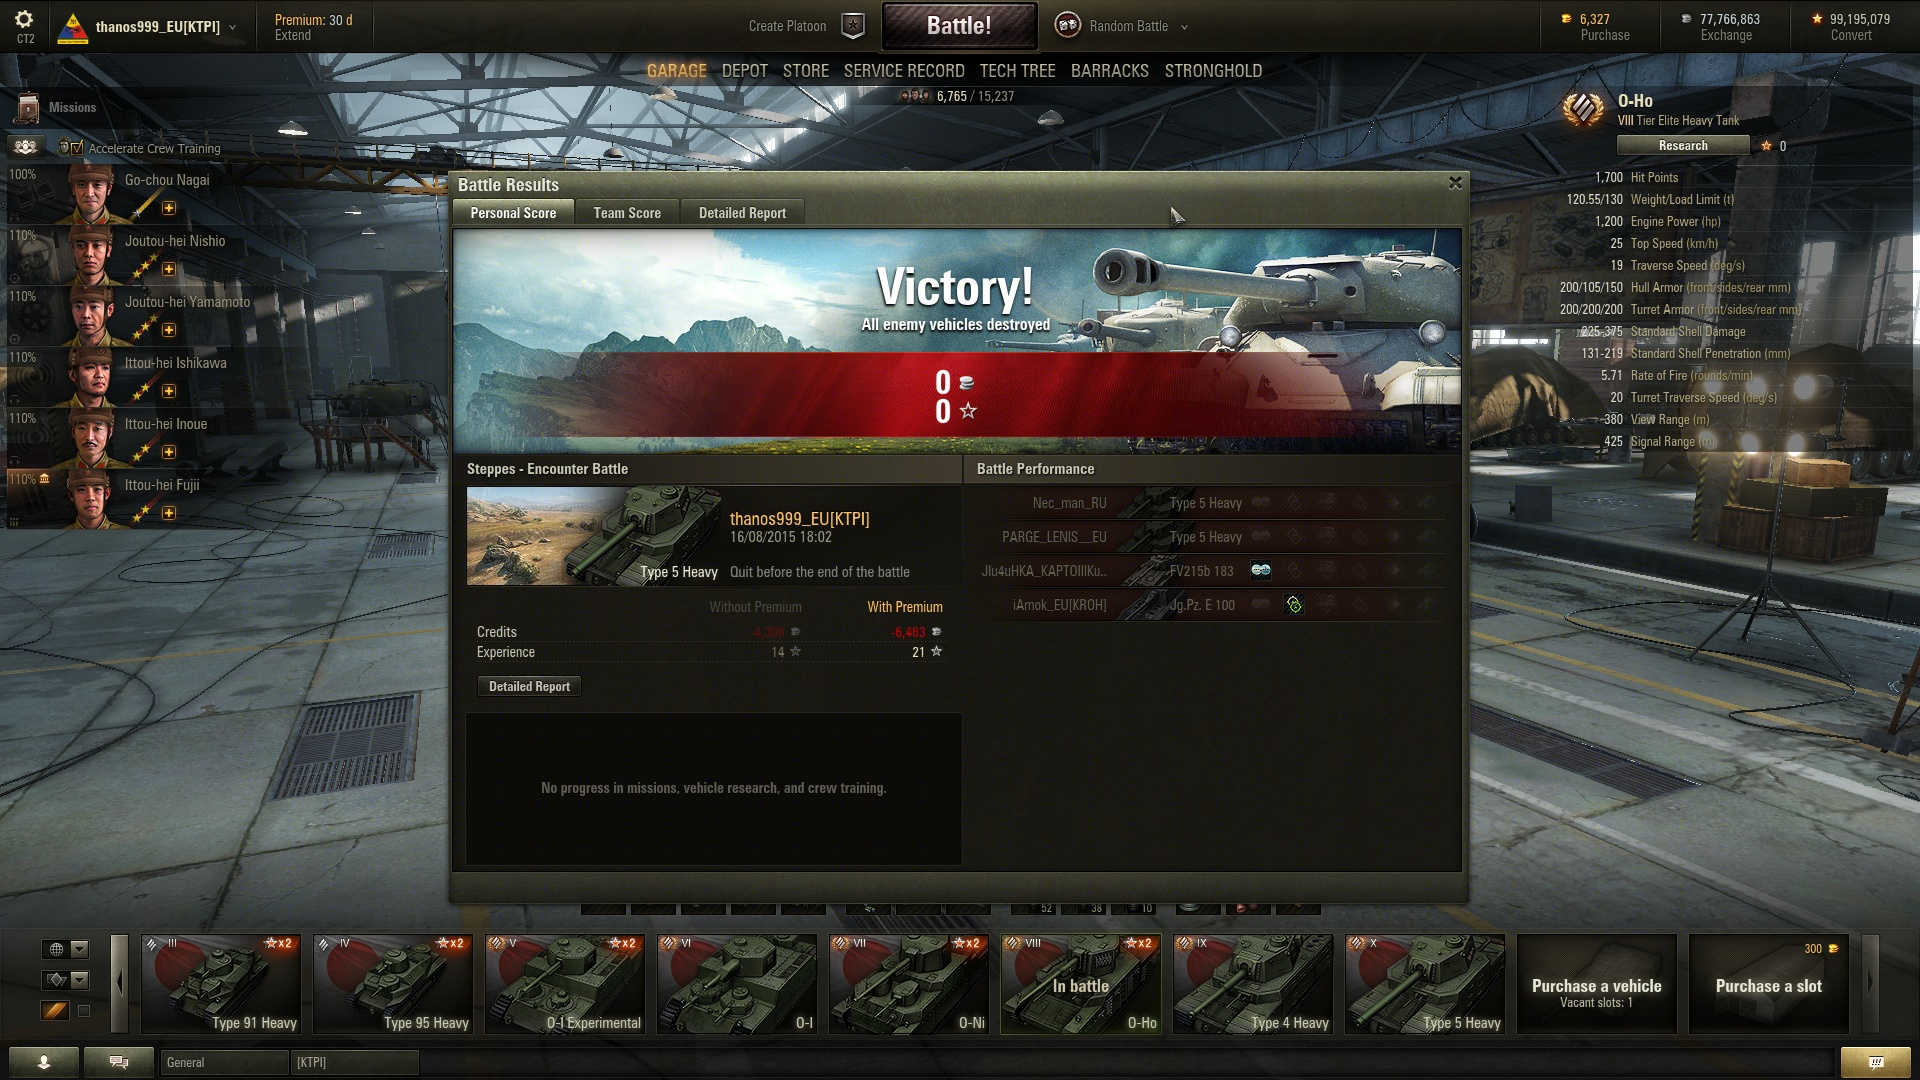 Official] World of Tanks (fun and awesomeness) discussion